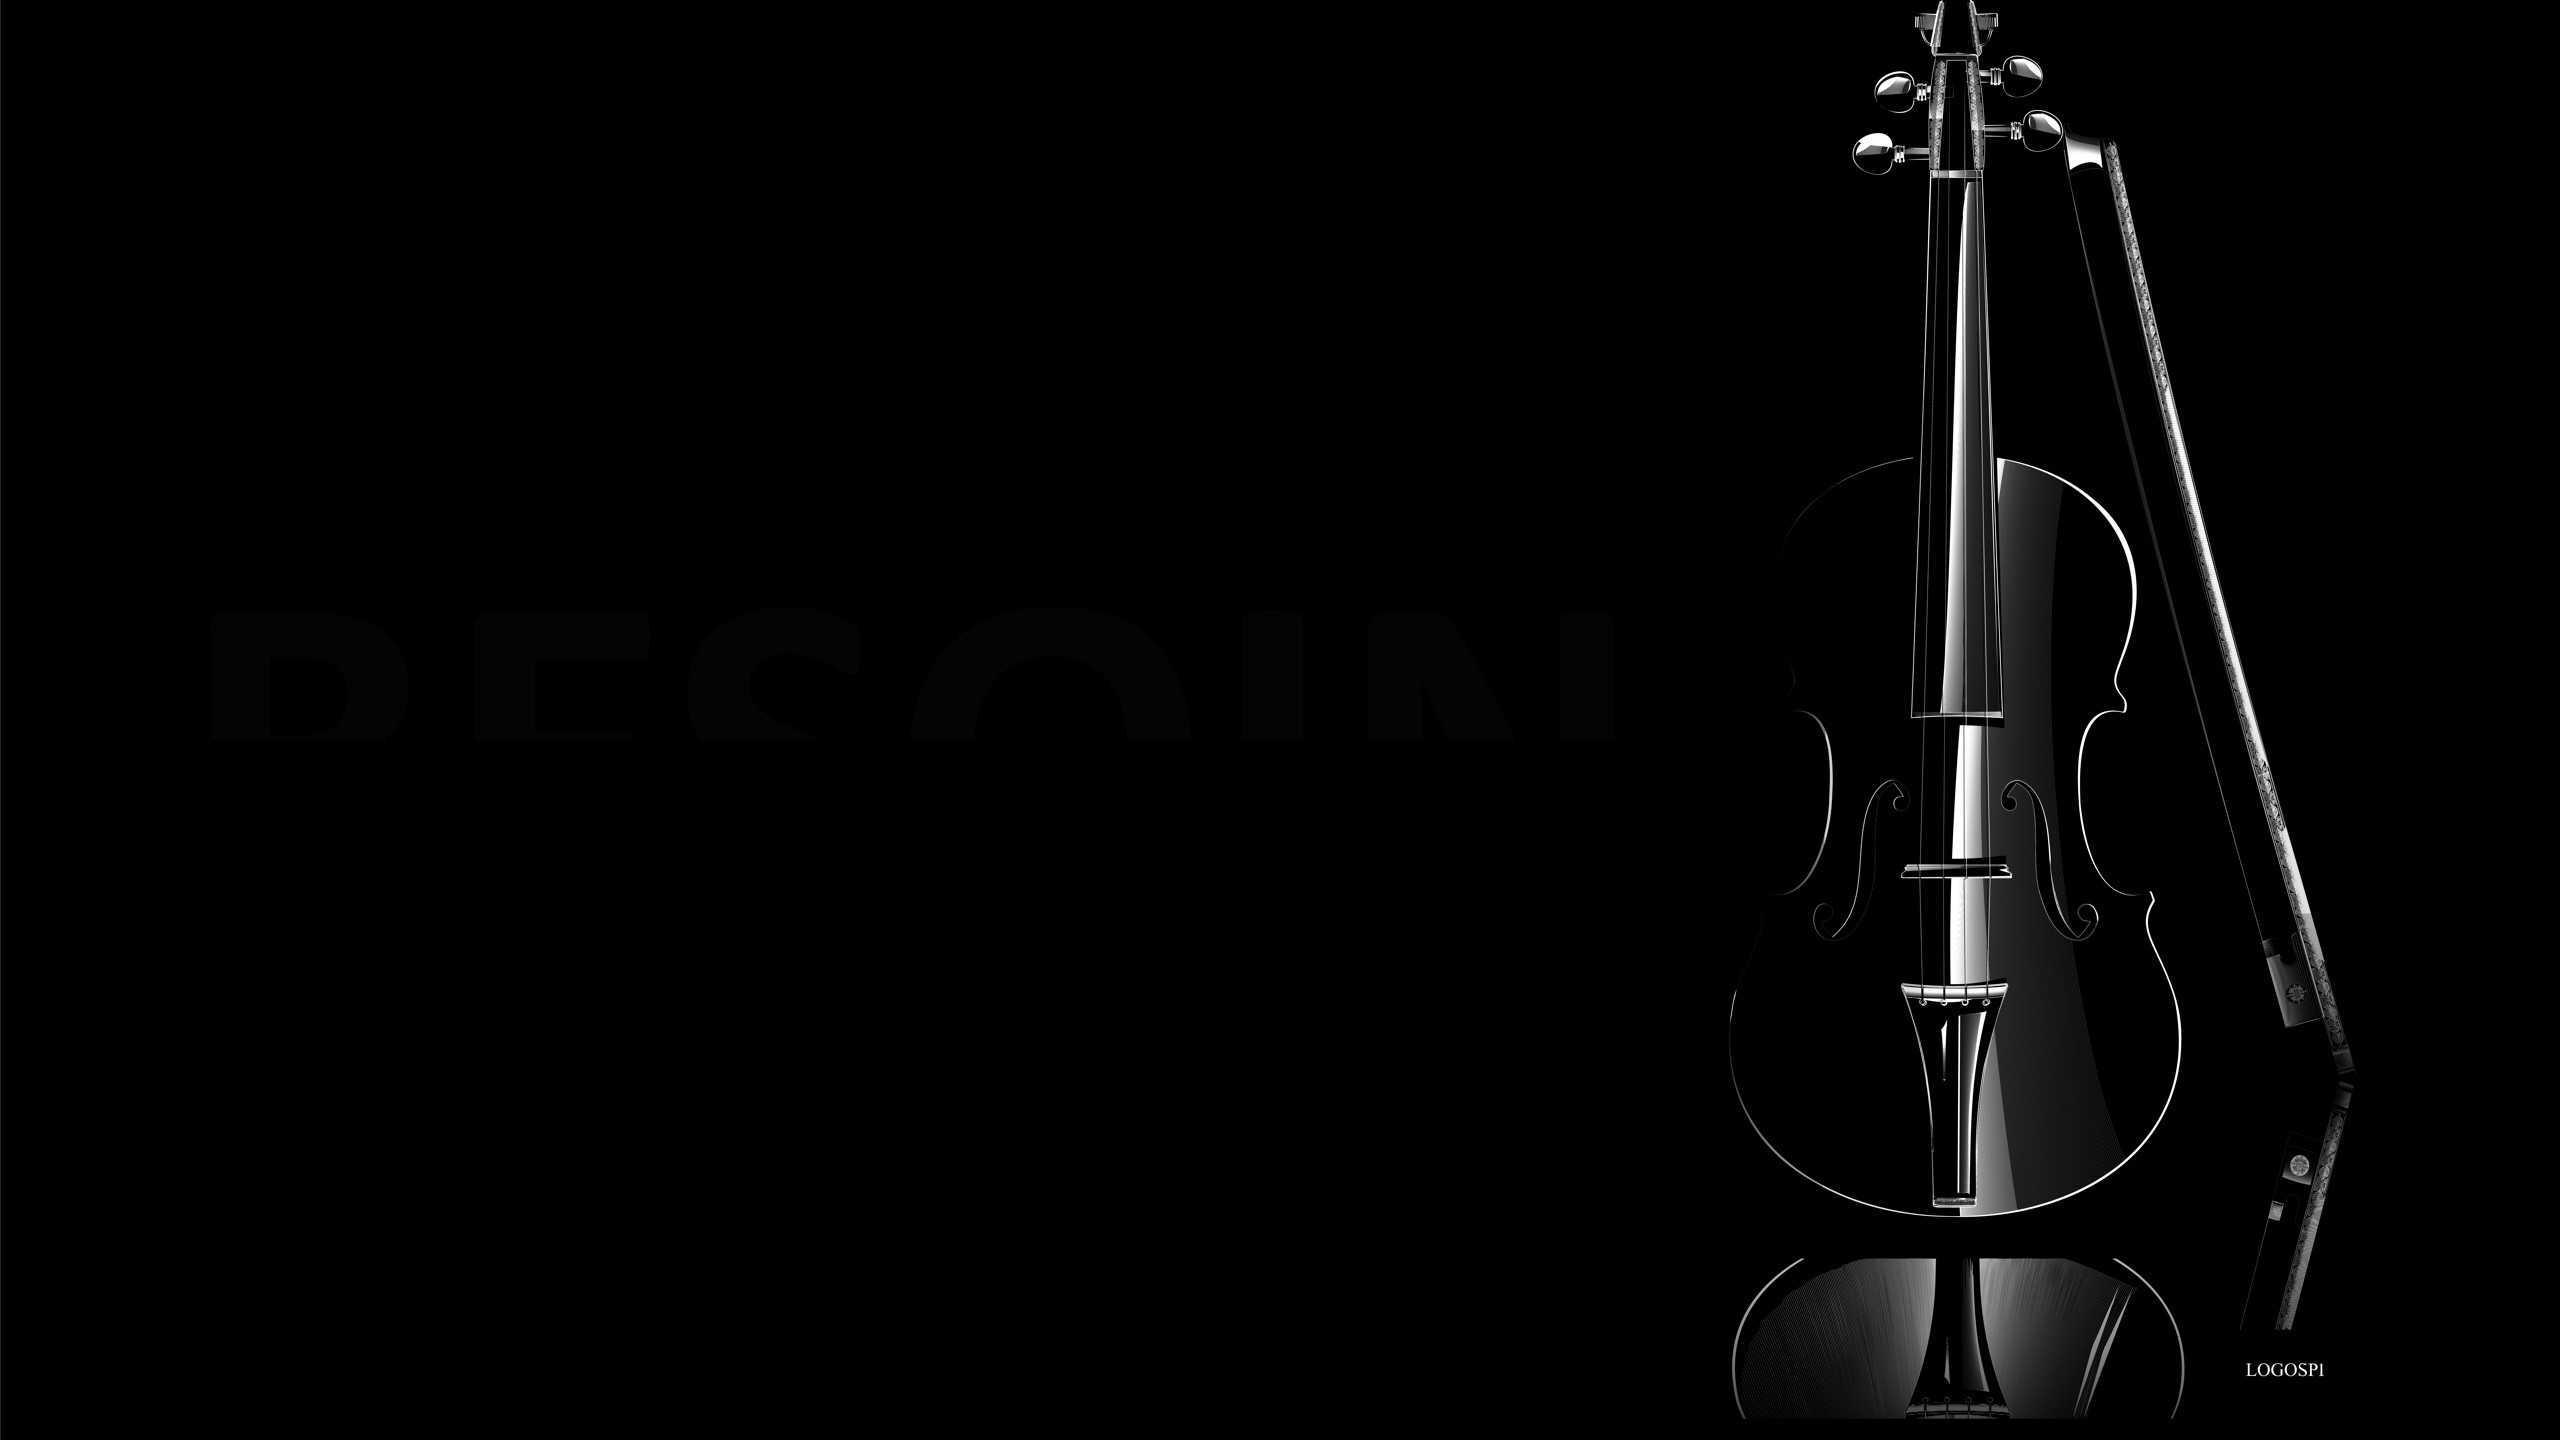 black violin. How to set wallpaper on your desktop? Click the  download link from above and set the wallpaper on the desktop from your OS.